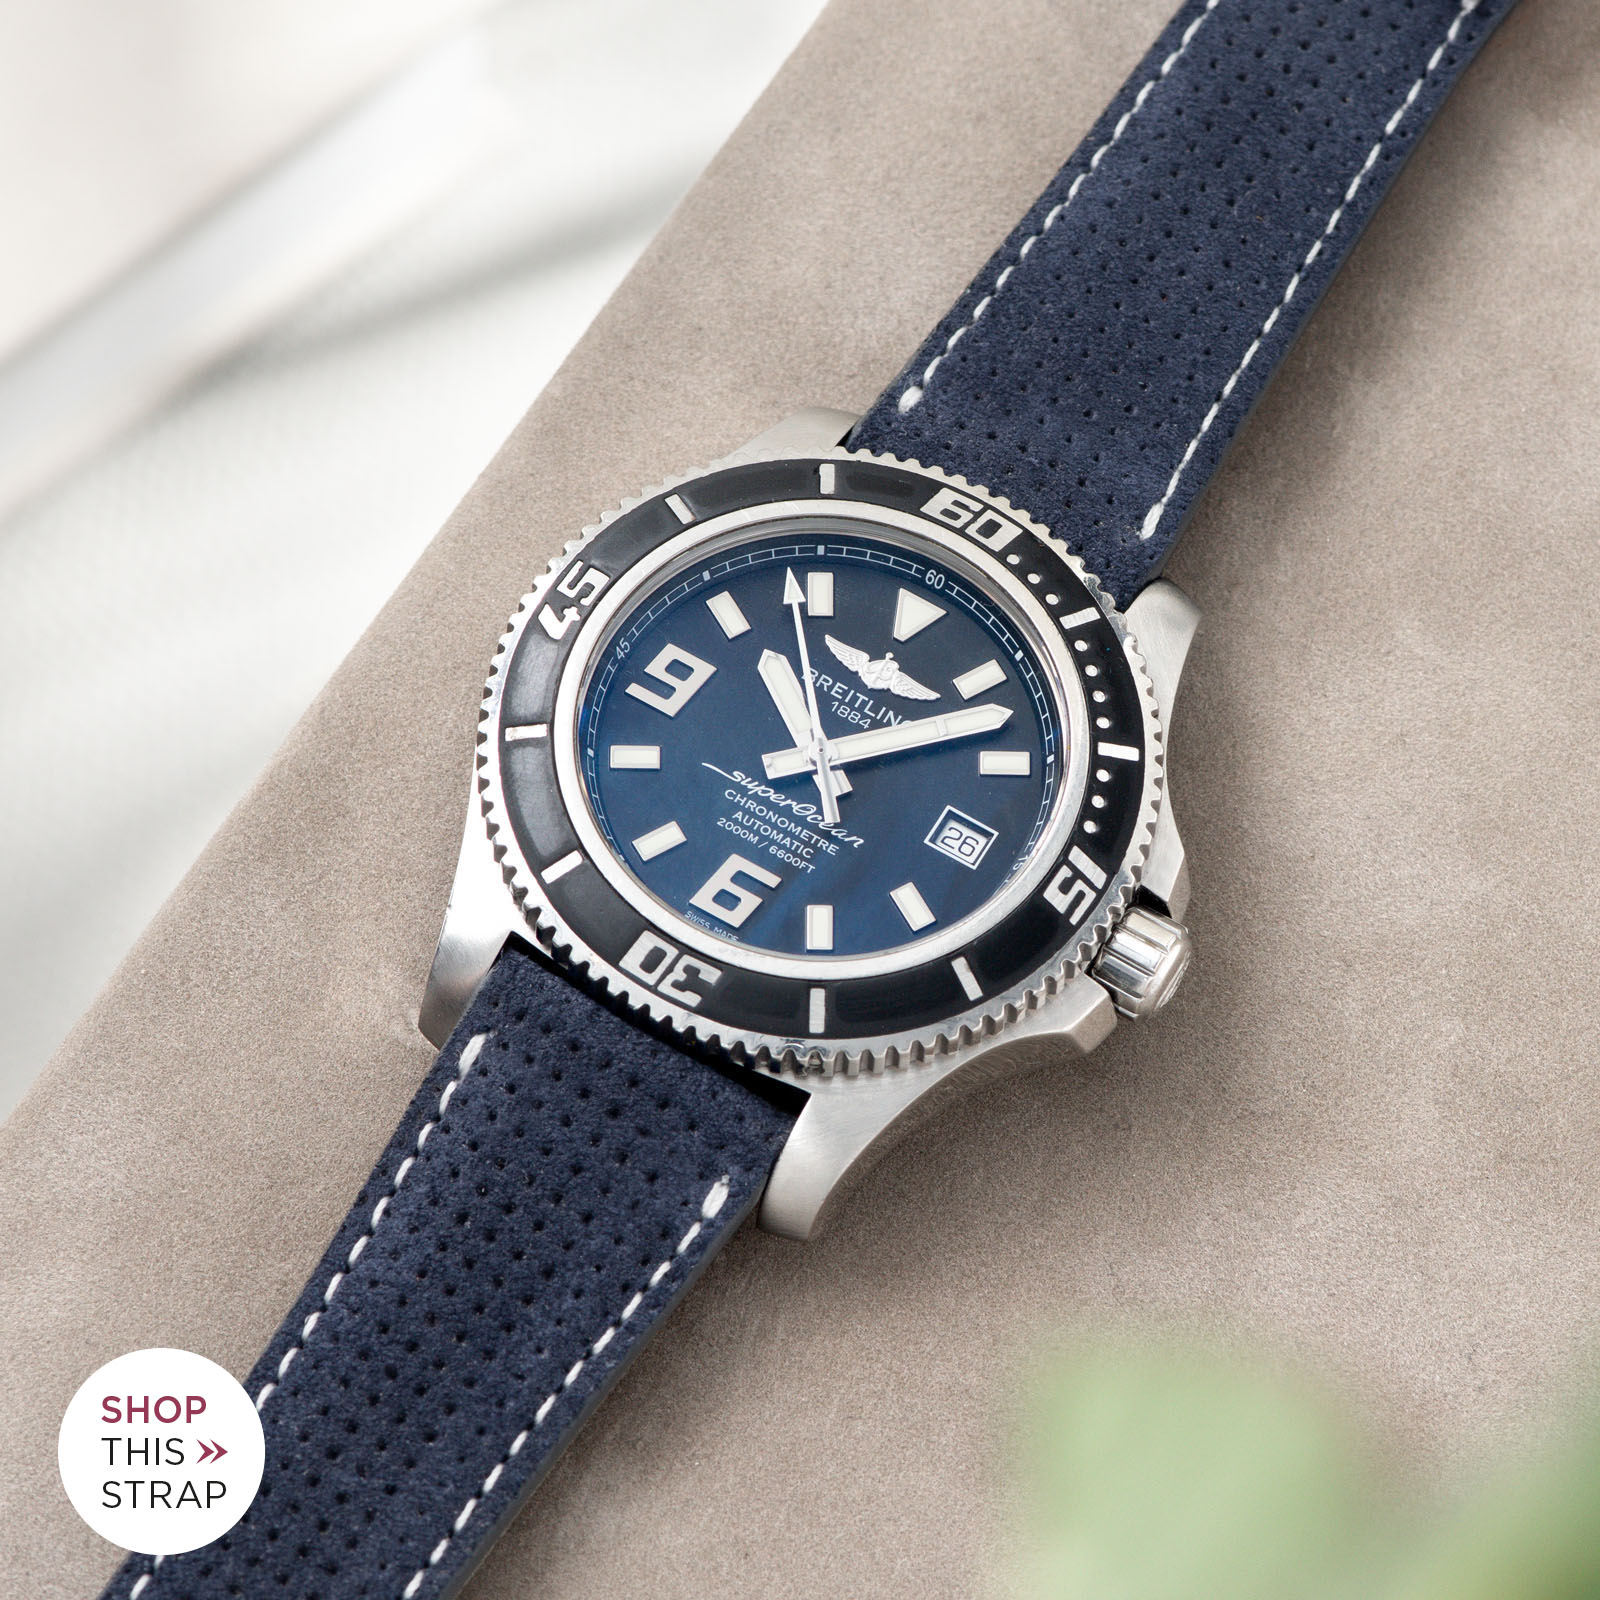 Bulang and Sons_Strap Guide_Breitling Superocean_Punched Blue Silky Suede Leather Watch Strap